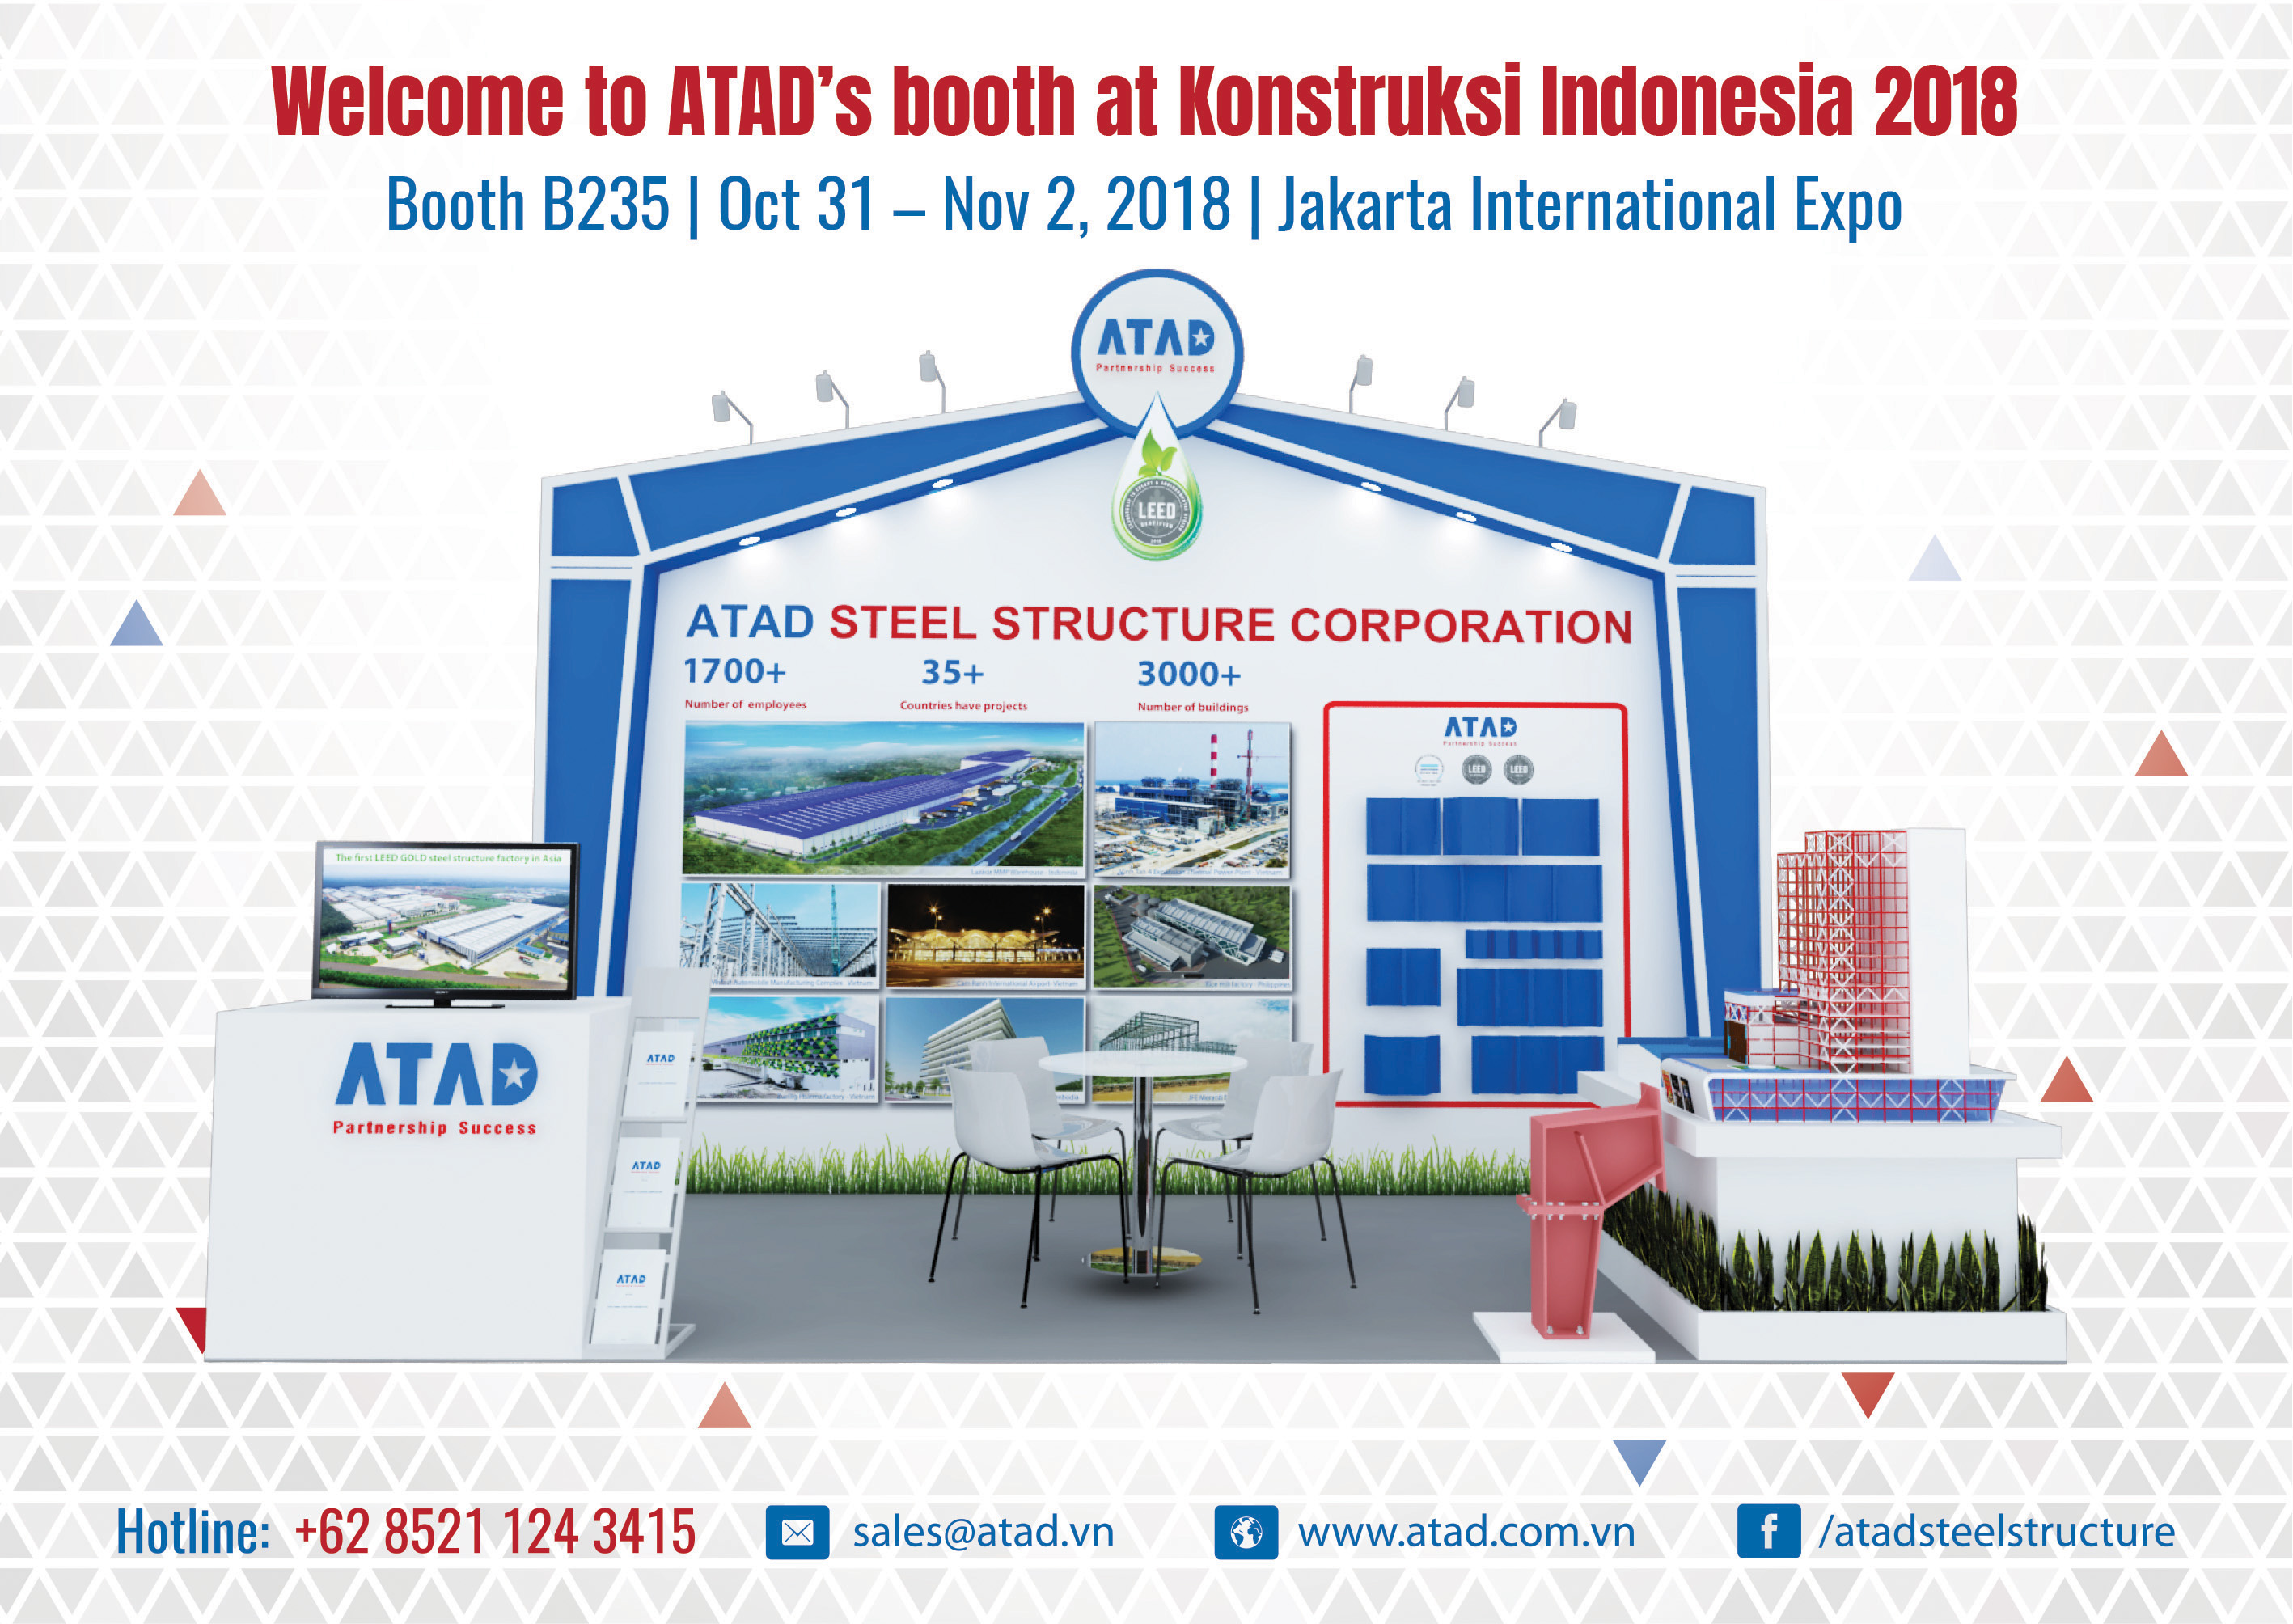 ATAD booth at the Konstruksi Indonesia 2018